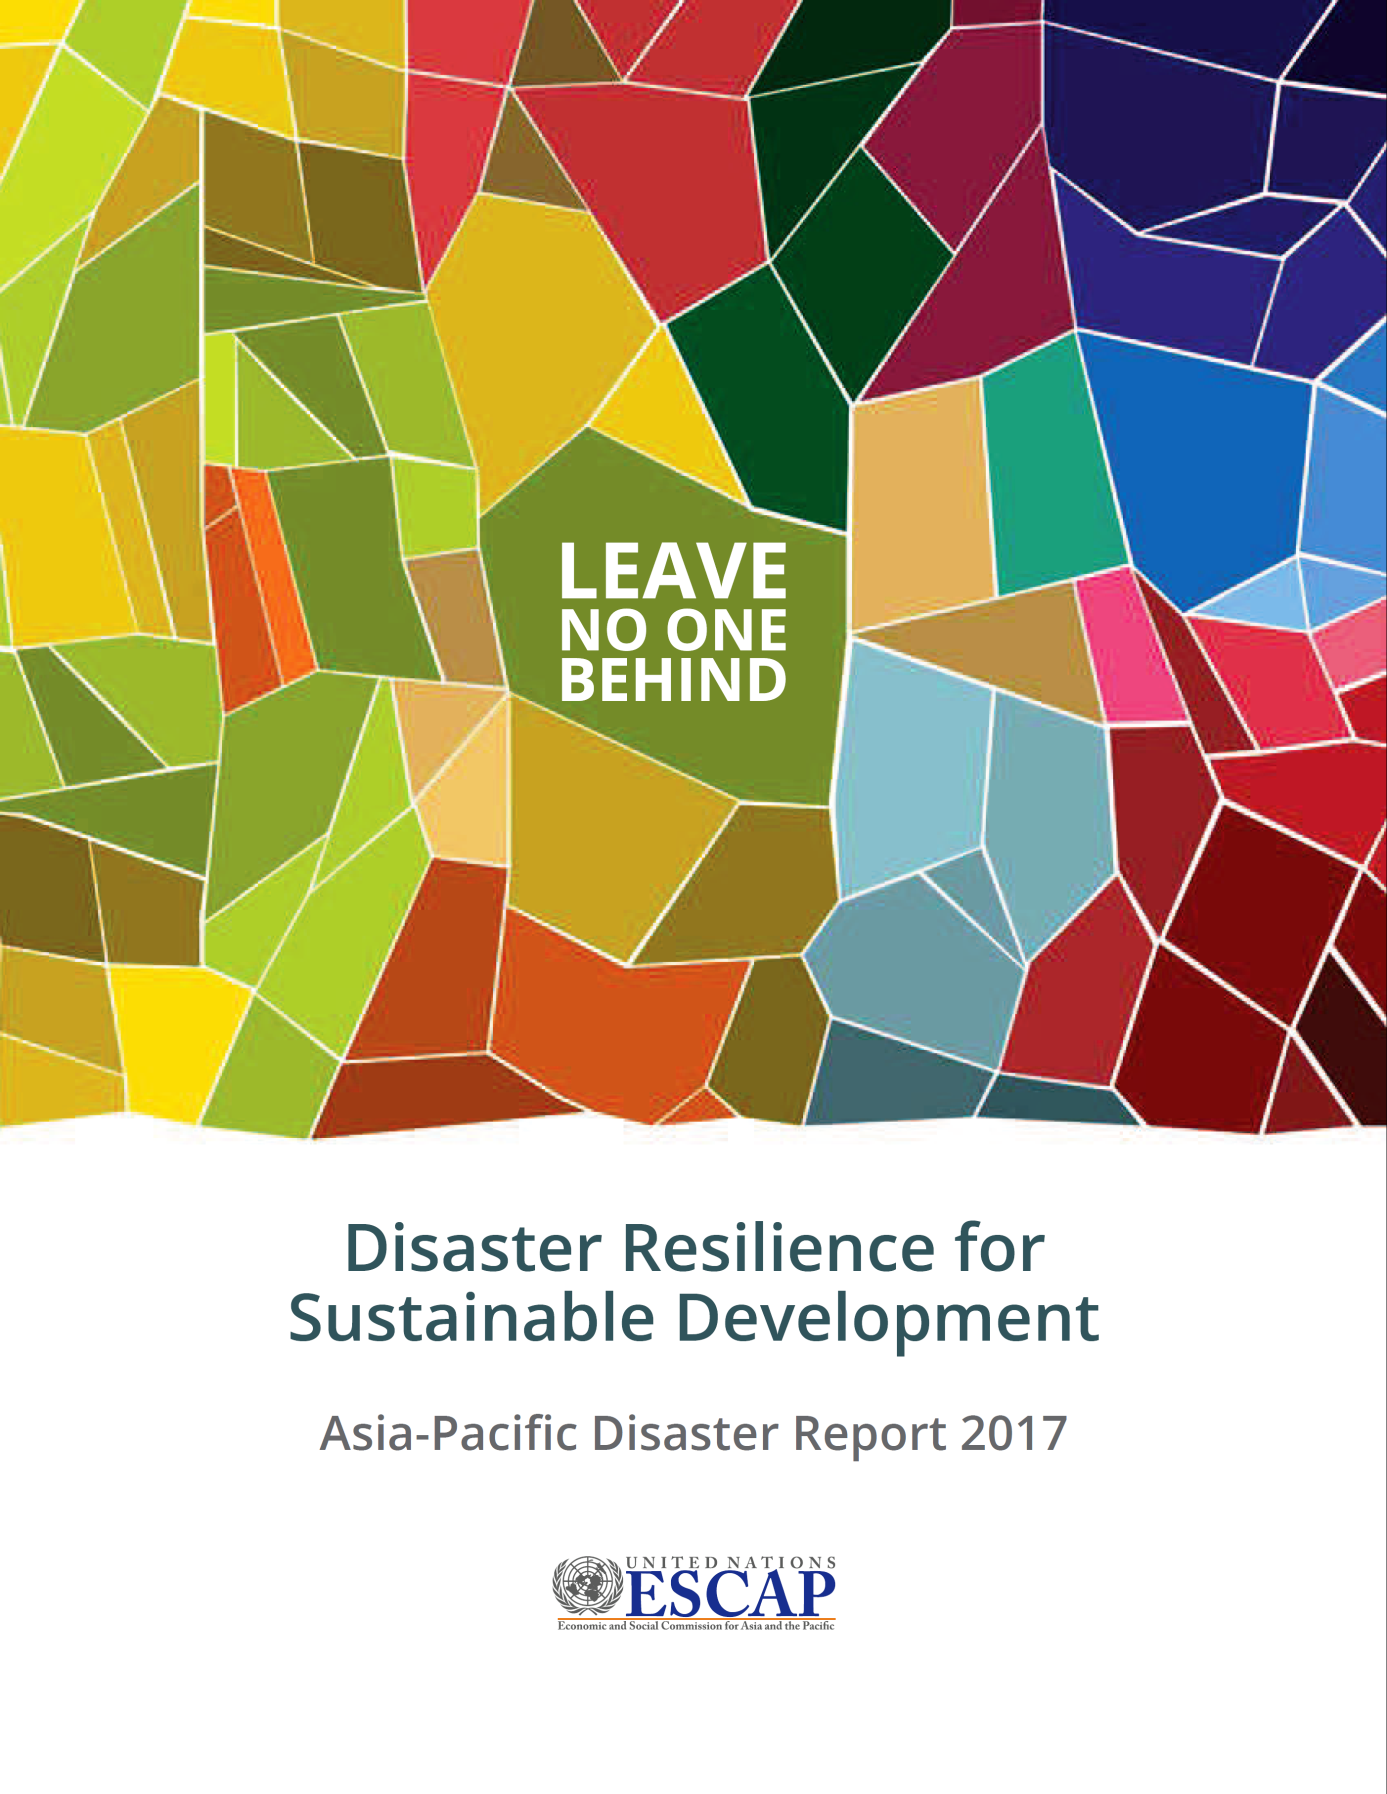 asia-pacific disaster